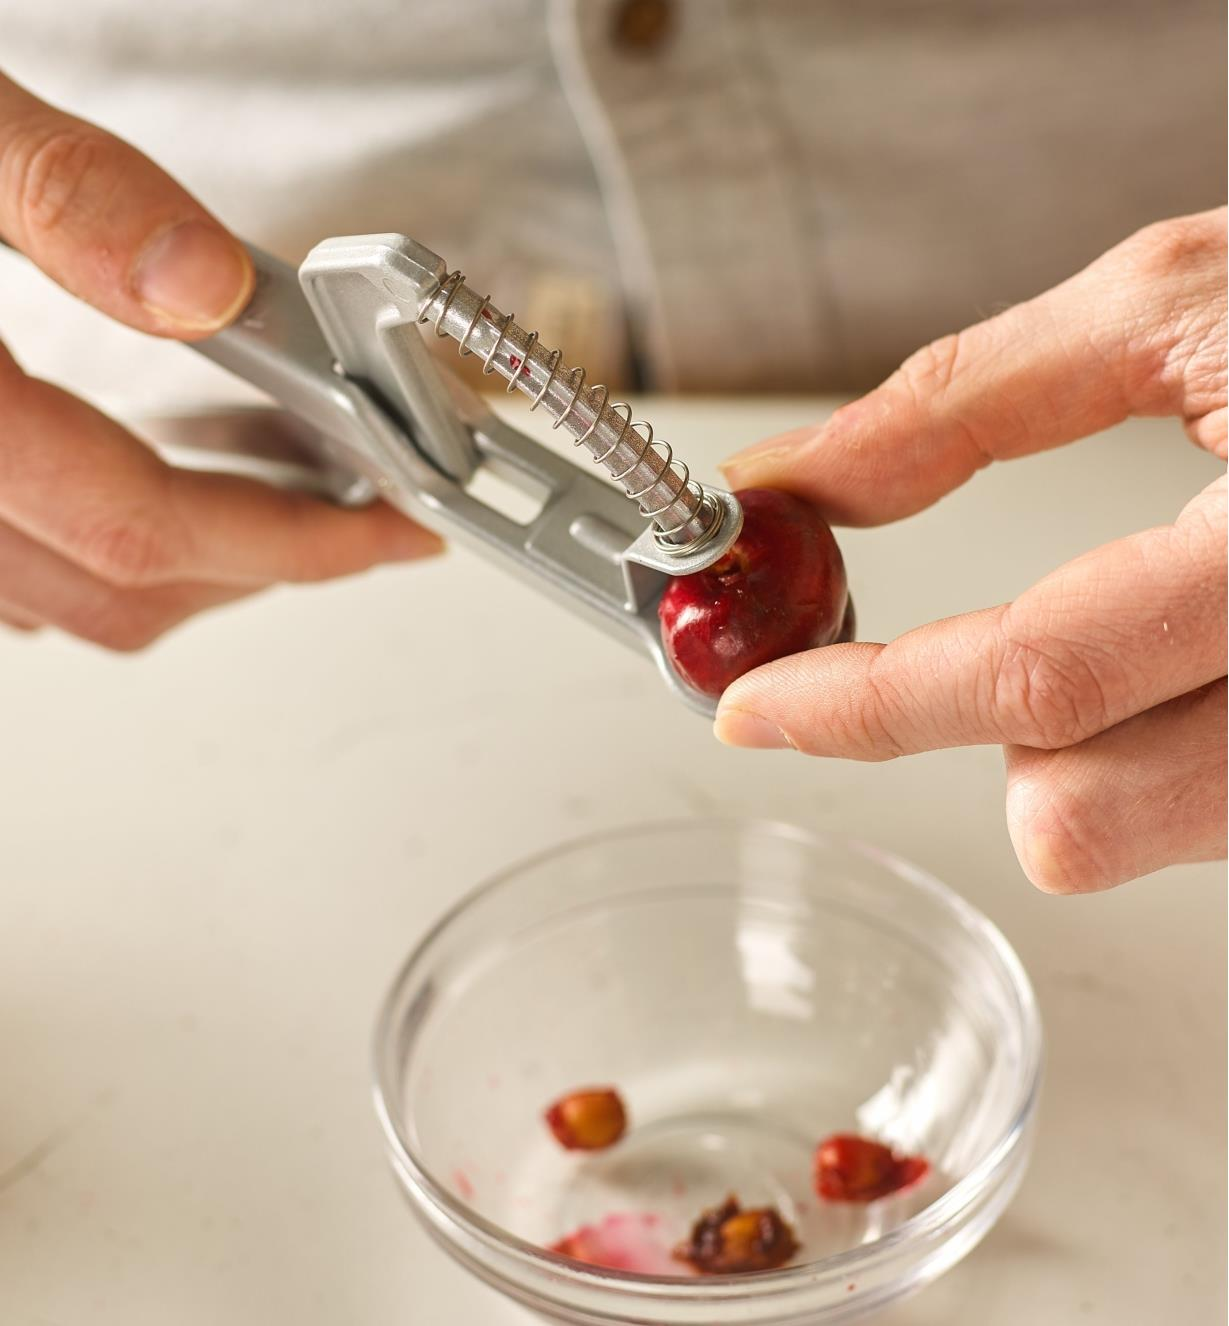 Removing the cherry from the olive and cherry pitter